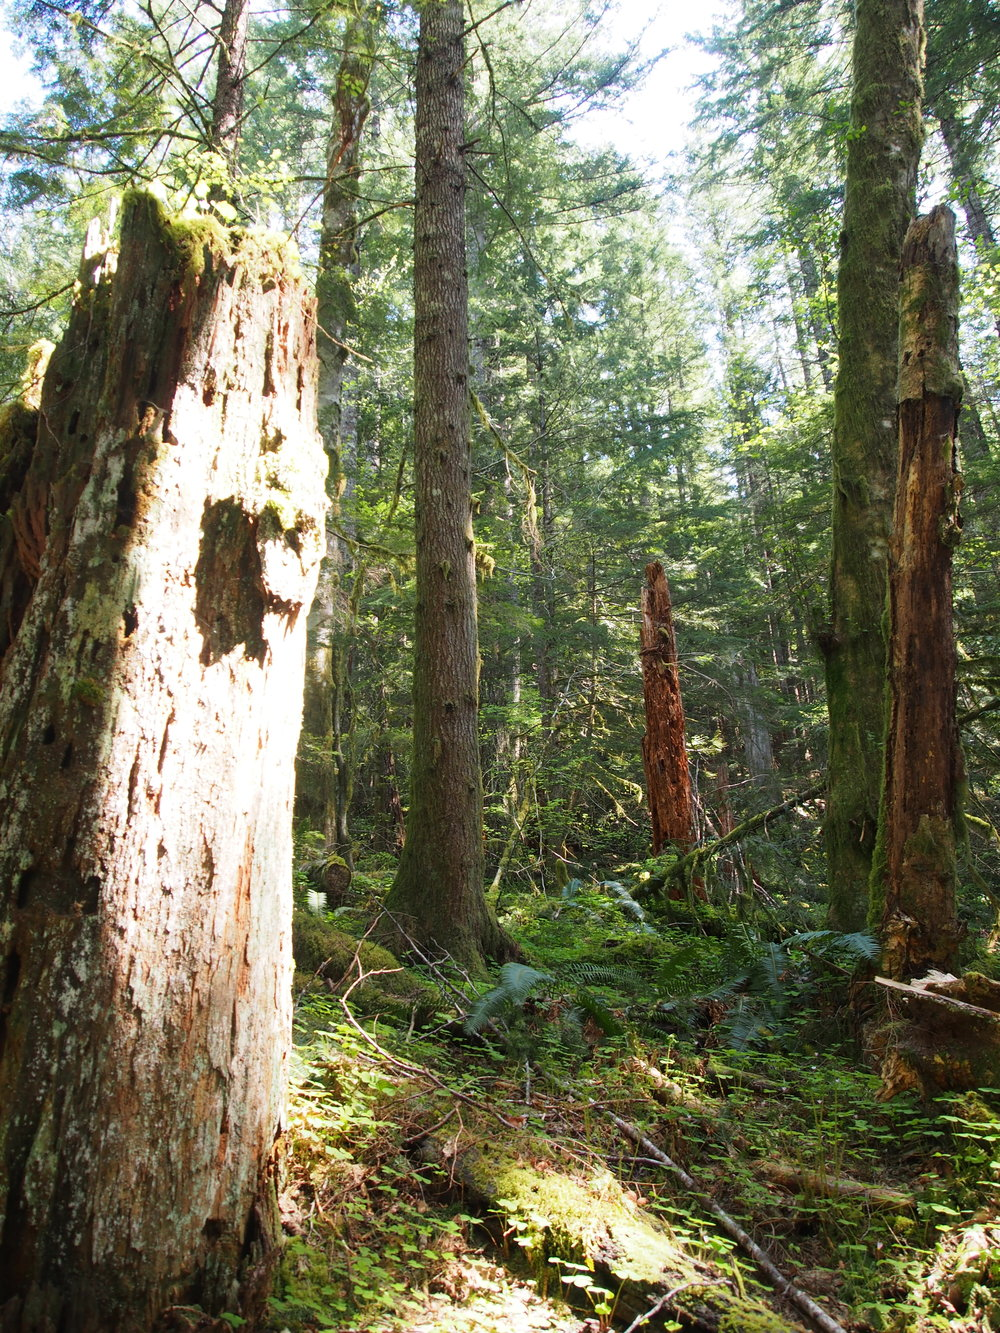 Old growth forests in the Northwest have natural habitat 'snags' everywhere which are the remnants from giant trees. They provide a perfect place for new life to form and old life to continue to grow.